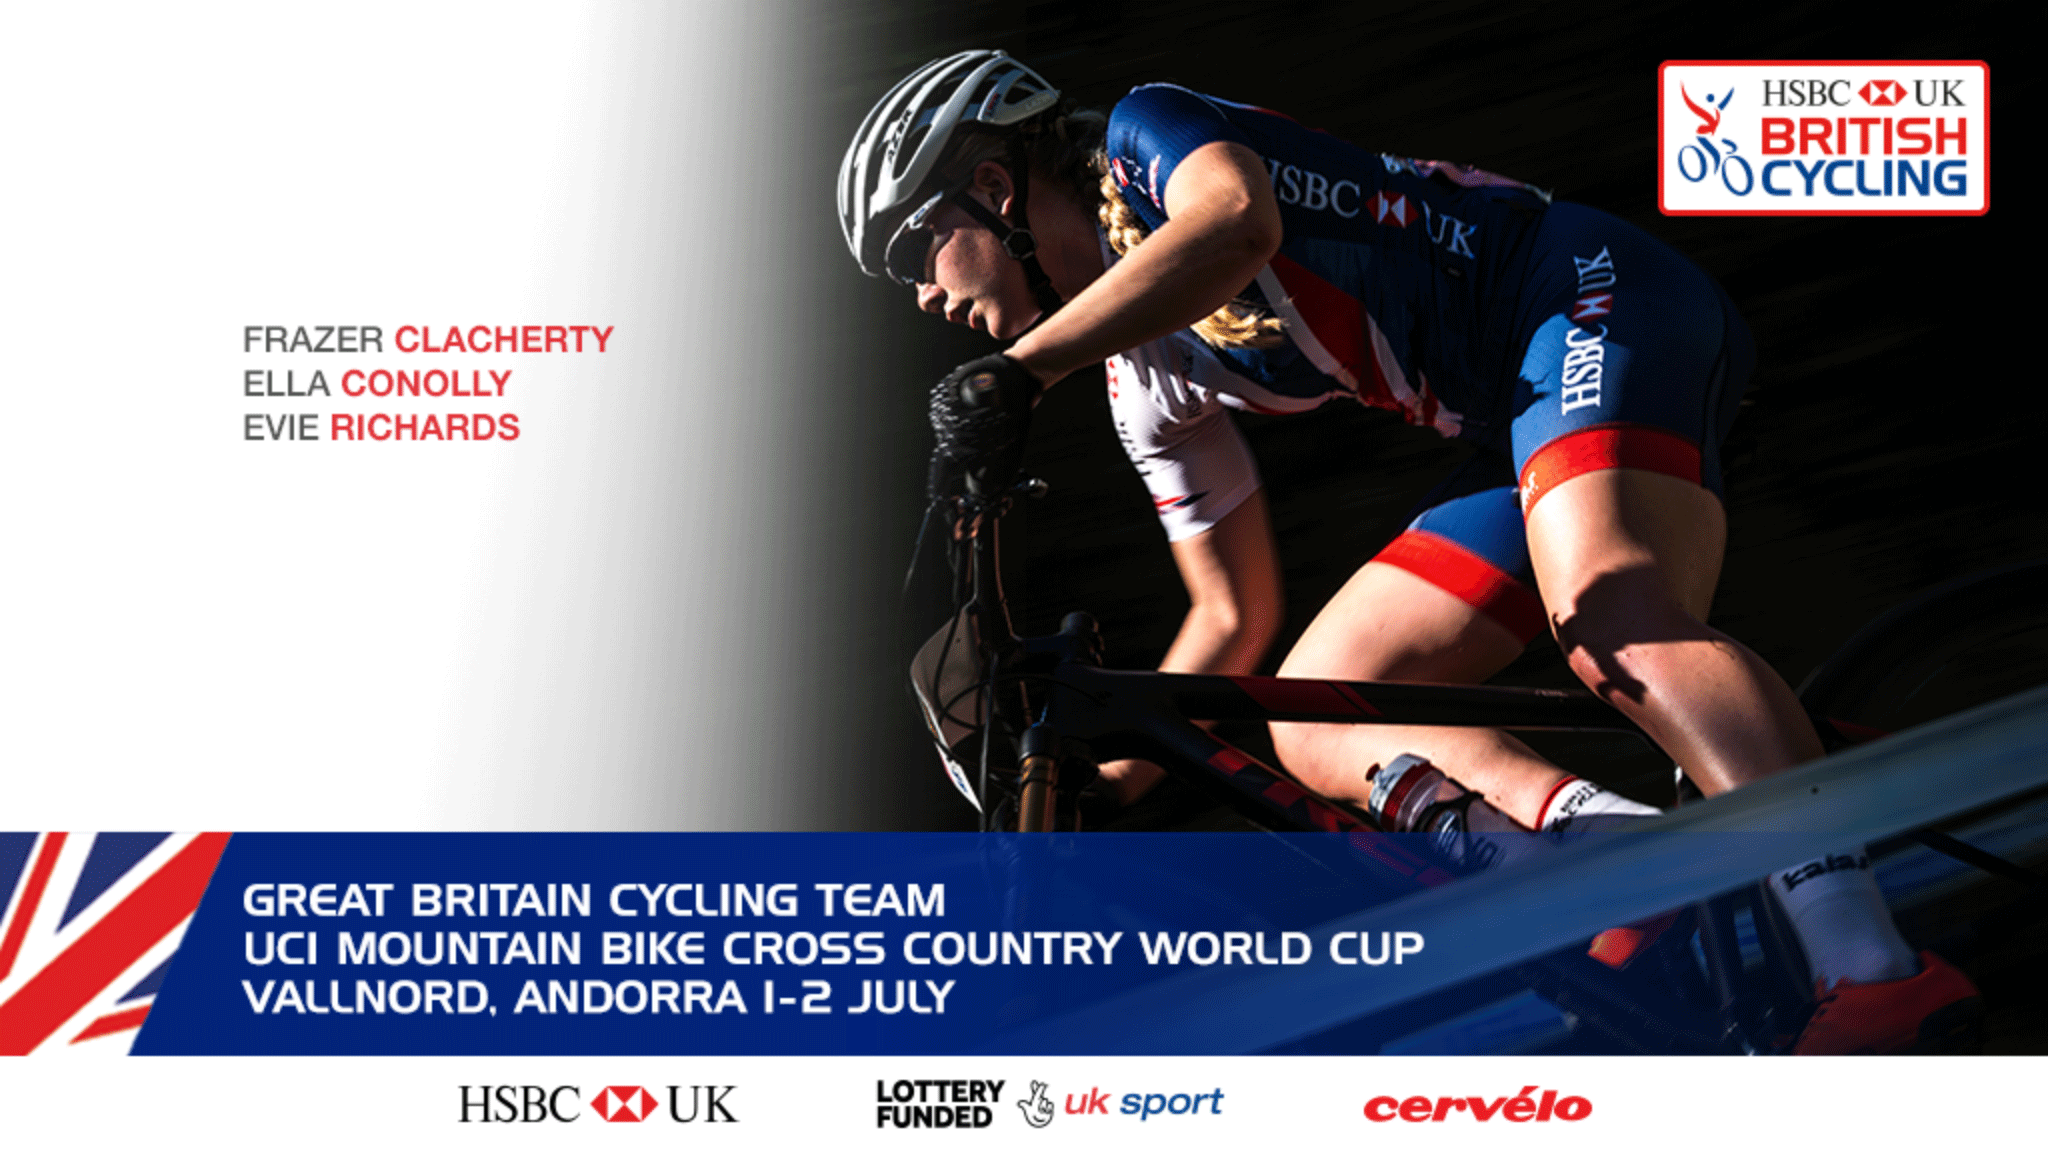 The Great Britain Cycling Team for the Vallnord Mountain Bike World Cup